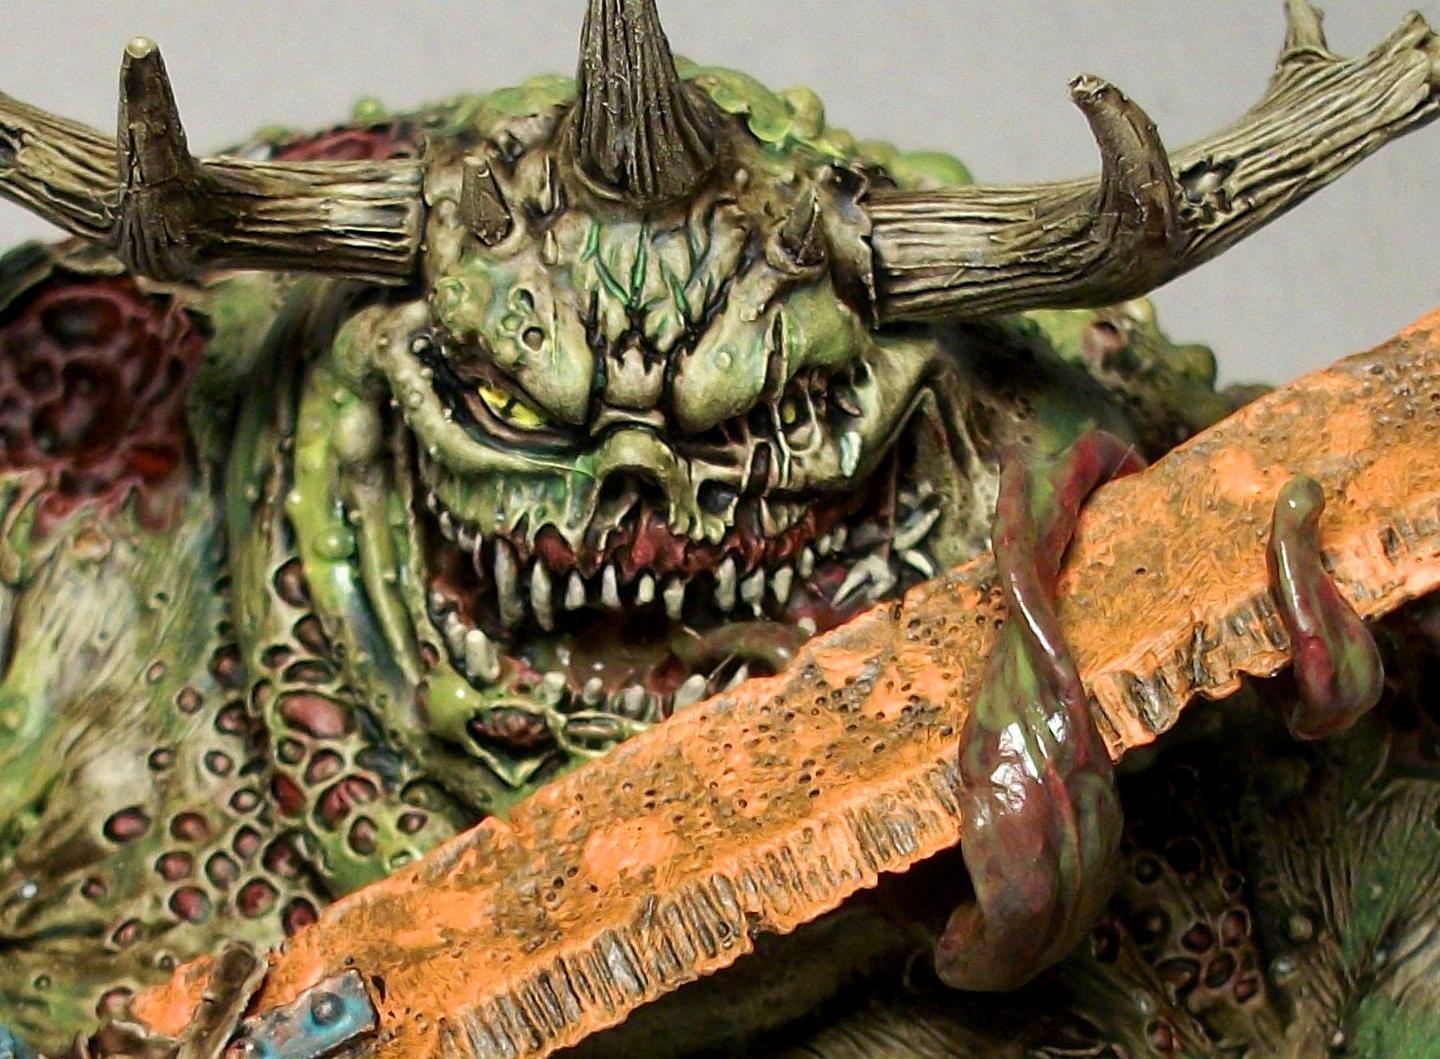 Chaos, Chaos Daemons, Daemons, Forge World, Great Unclean One, Greater Daemon, Greater Daemon Of Nurgle, Nurgle